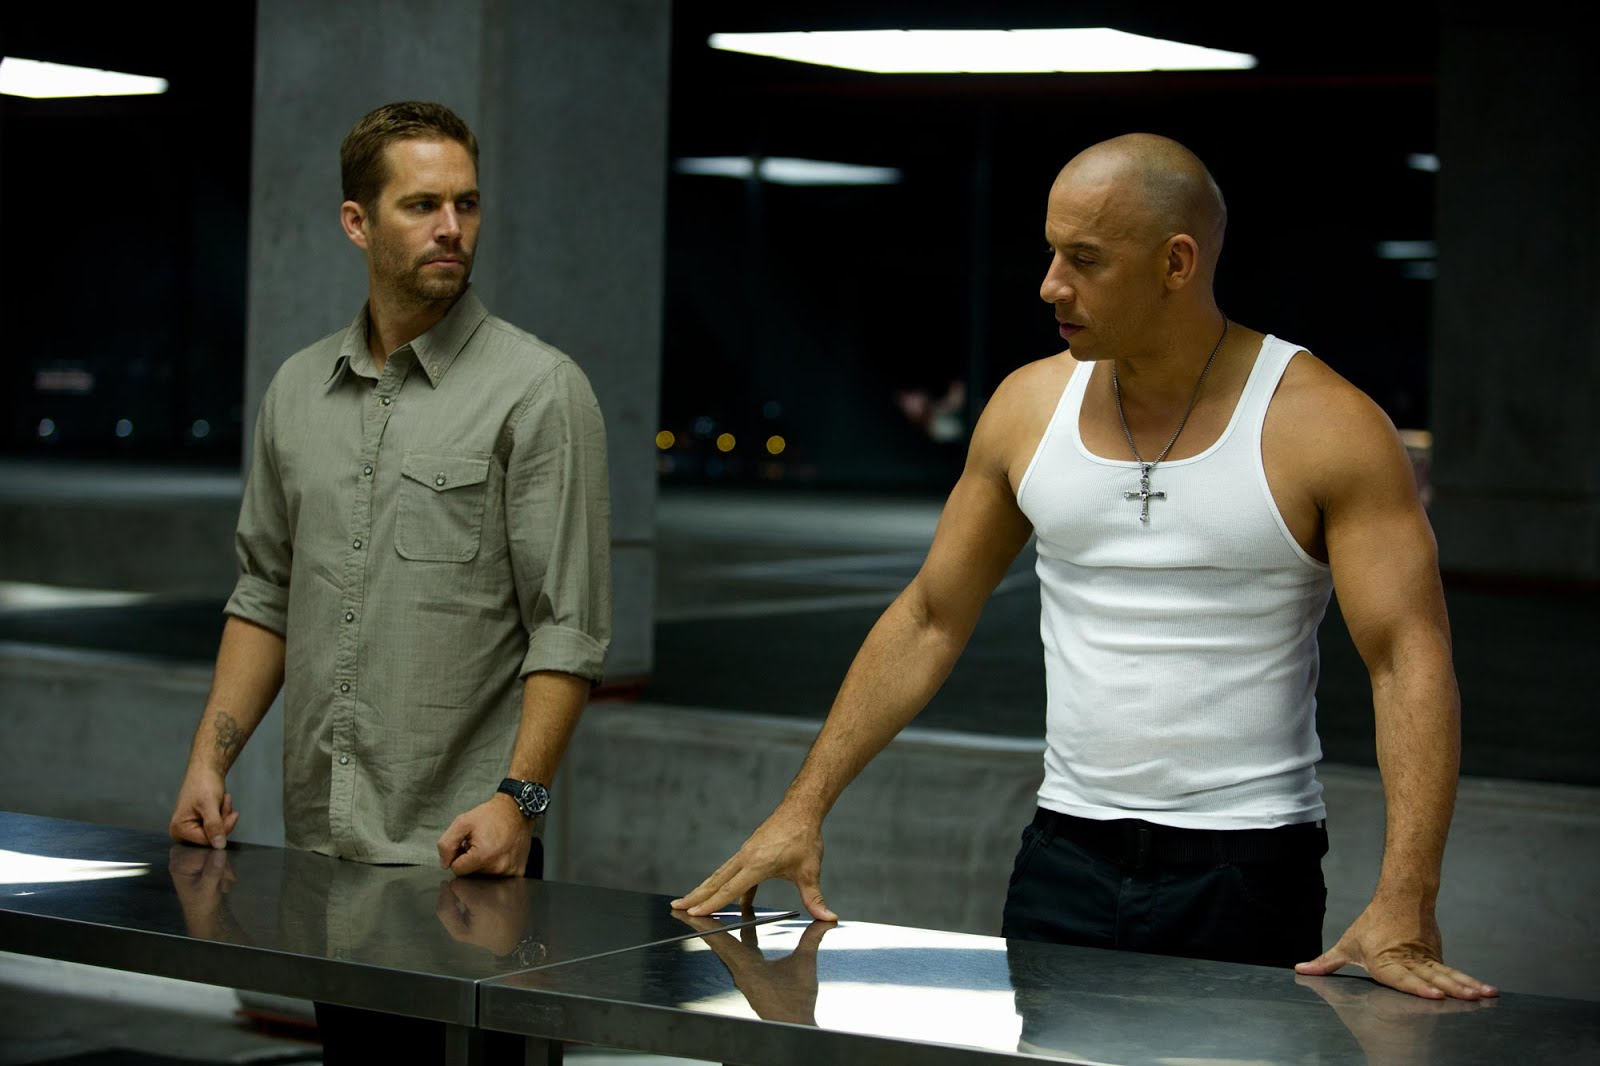 fast and furious 6 movie still2B252822529 - fast and furious 6 movie images